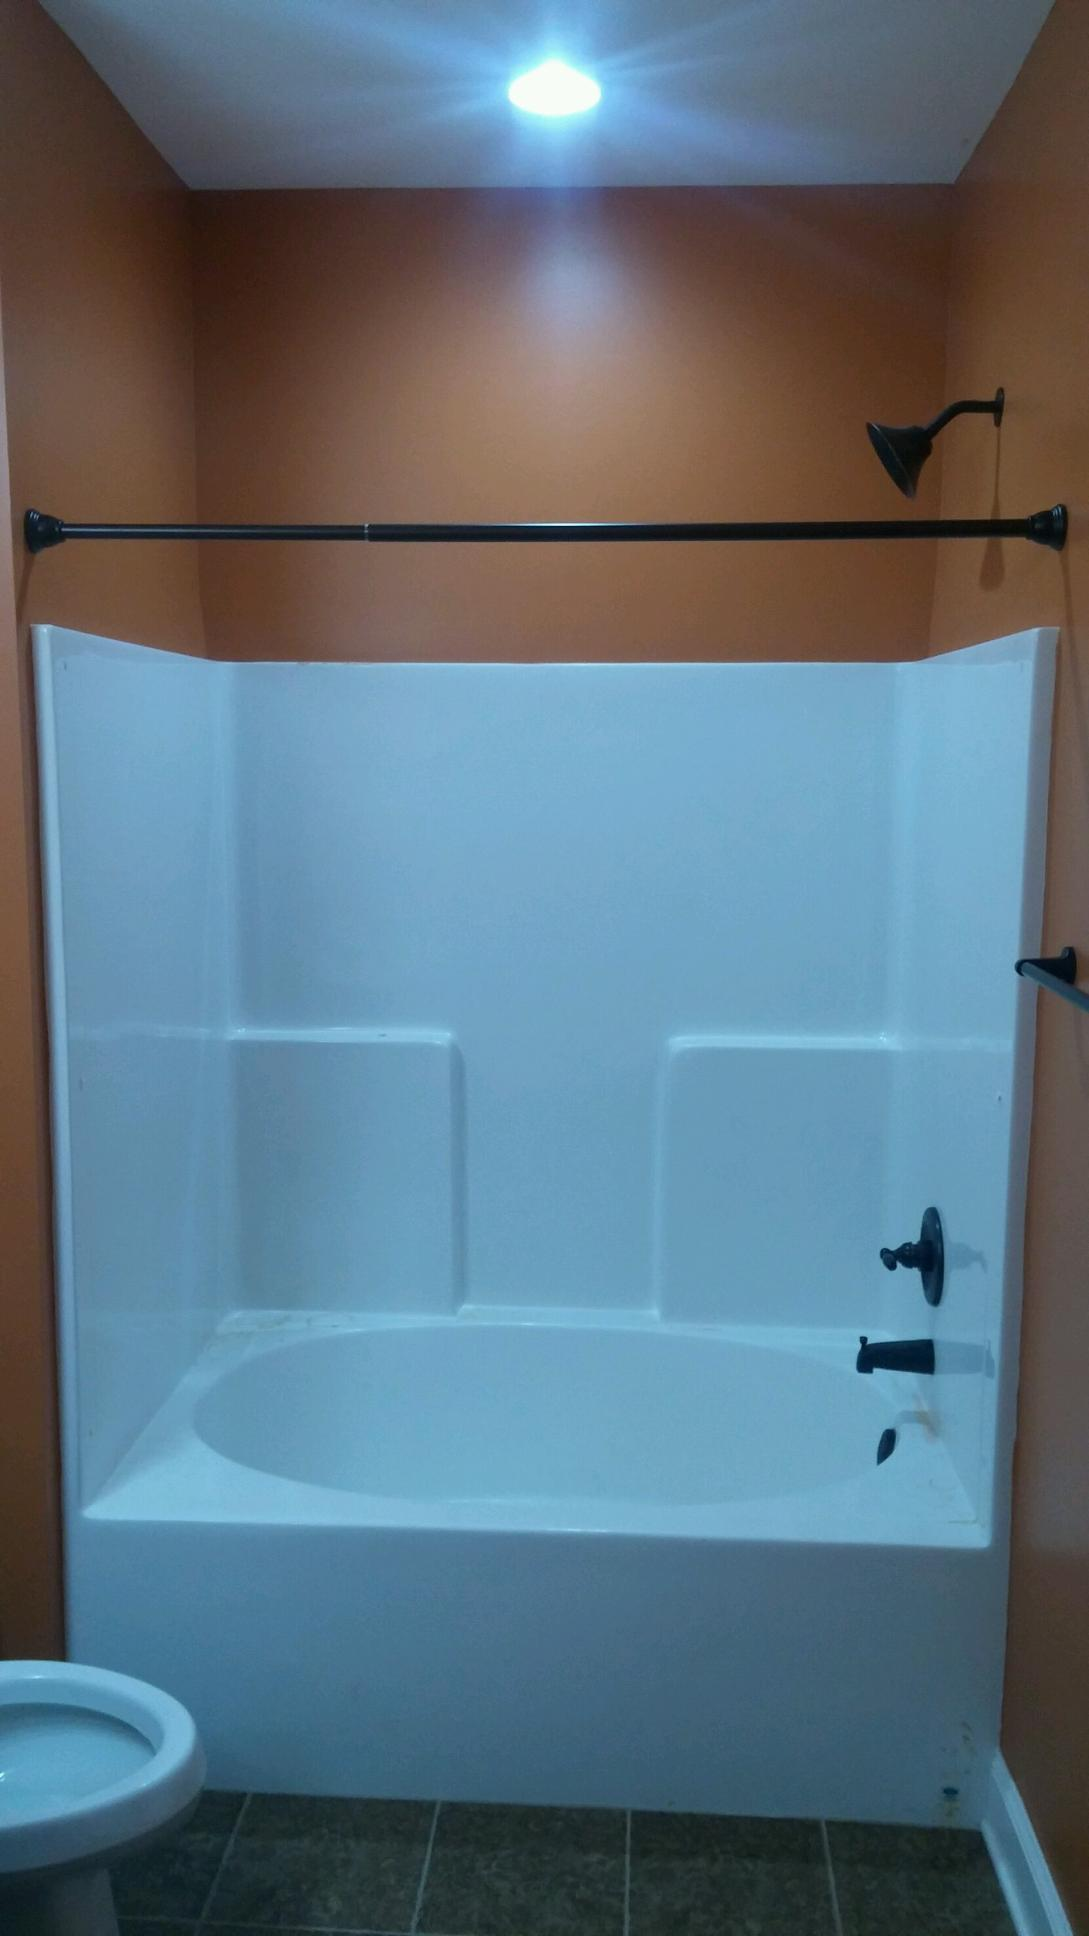 Pin Lasco Tub and Shower Units Images to Pinterest